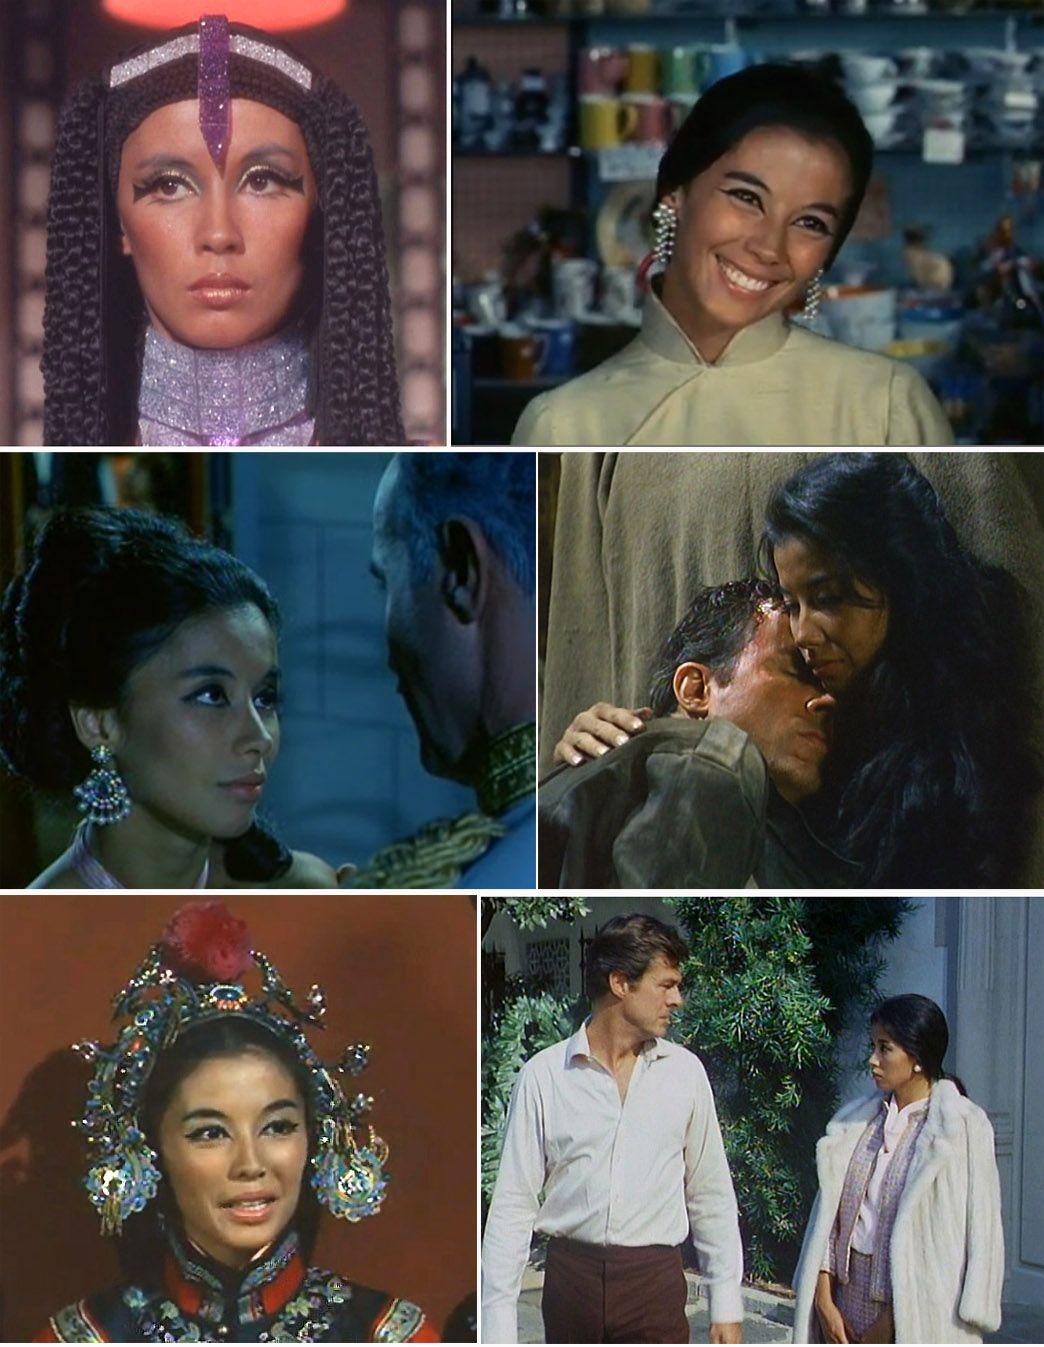 """France Nuyen as Elaan, from Star Trek S03E13, """"Elaan of Troyius,"""" and as Sada in """"Always Say Good-bye,"""" Sam Than McLean in """"The Tiger,"""" and """"Magic Mirror,"""" and as Empress in """"An American Empress."""" I Spy (Robert Culp, Bill Cosby - NBC TV, 1965-1968)"""